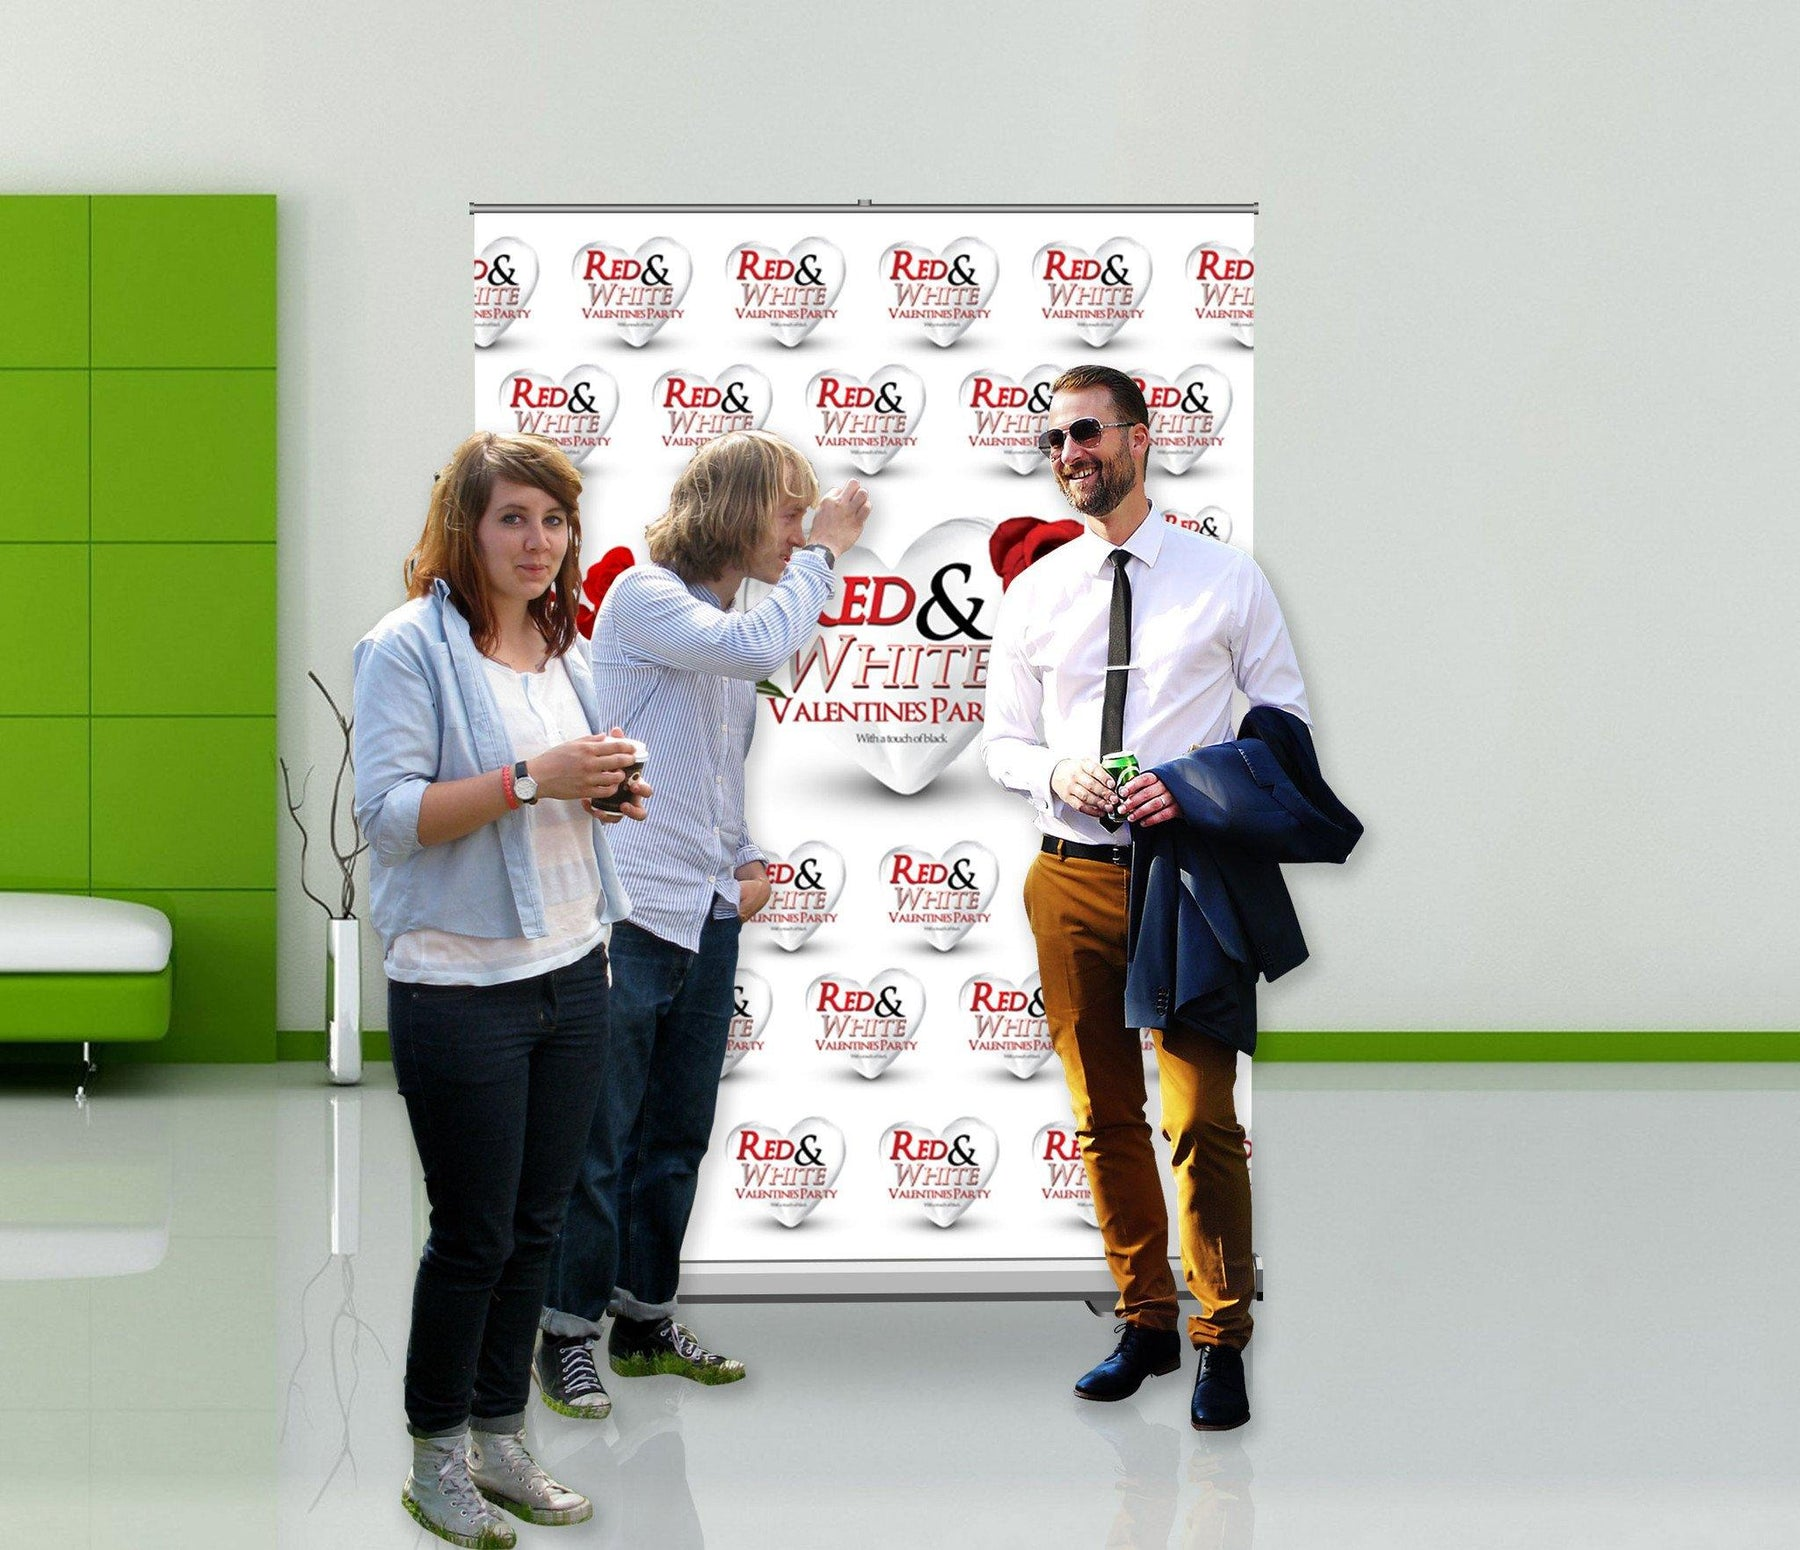 Roller Banners 1500mm x 2000mm (prices based on 1 artwork) - printexpert.co.uk